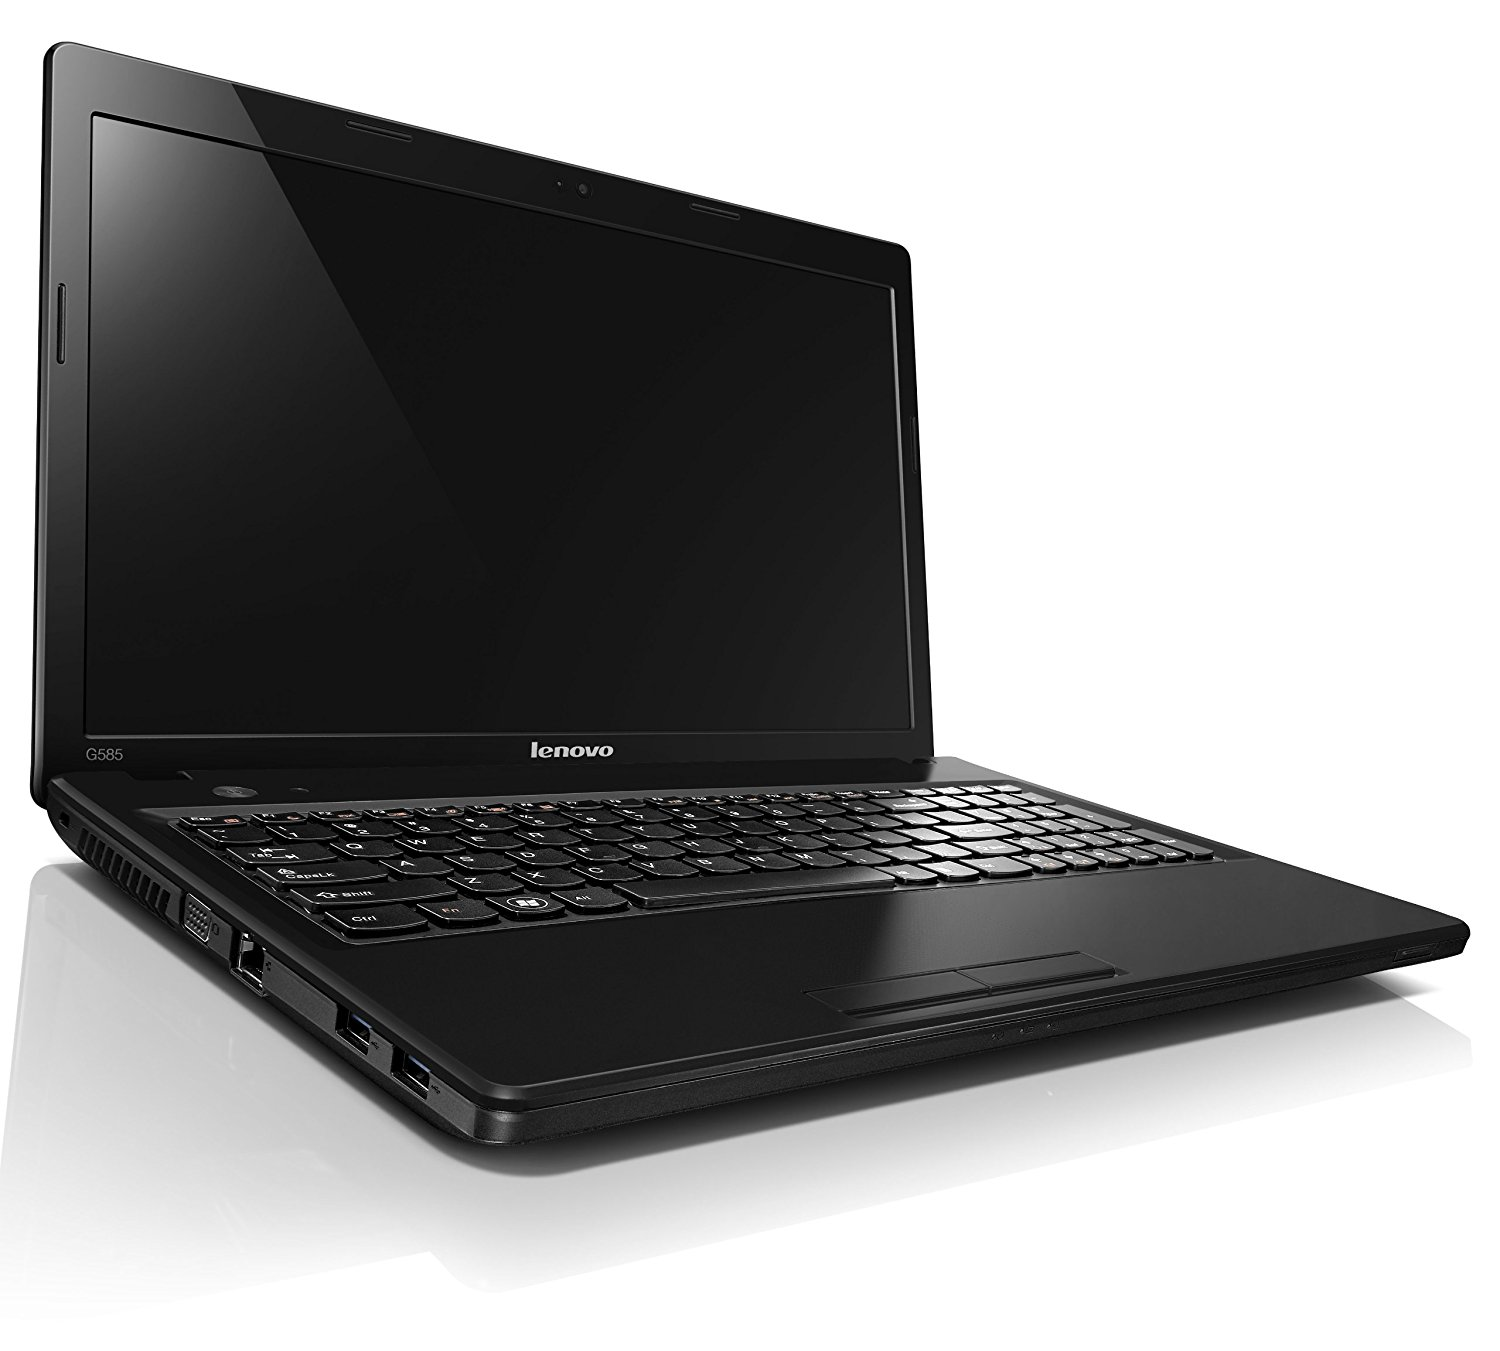 Lenovo G485 Driver Wifi Activar Switch Power Laptop Property Respective Authors 6 G Joins Premium Processing With An Affordable Price Also Compatible To Model G480 G580 G585 Download